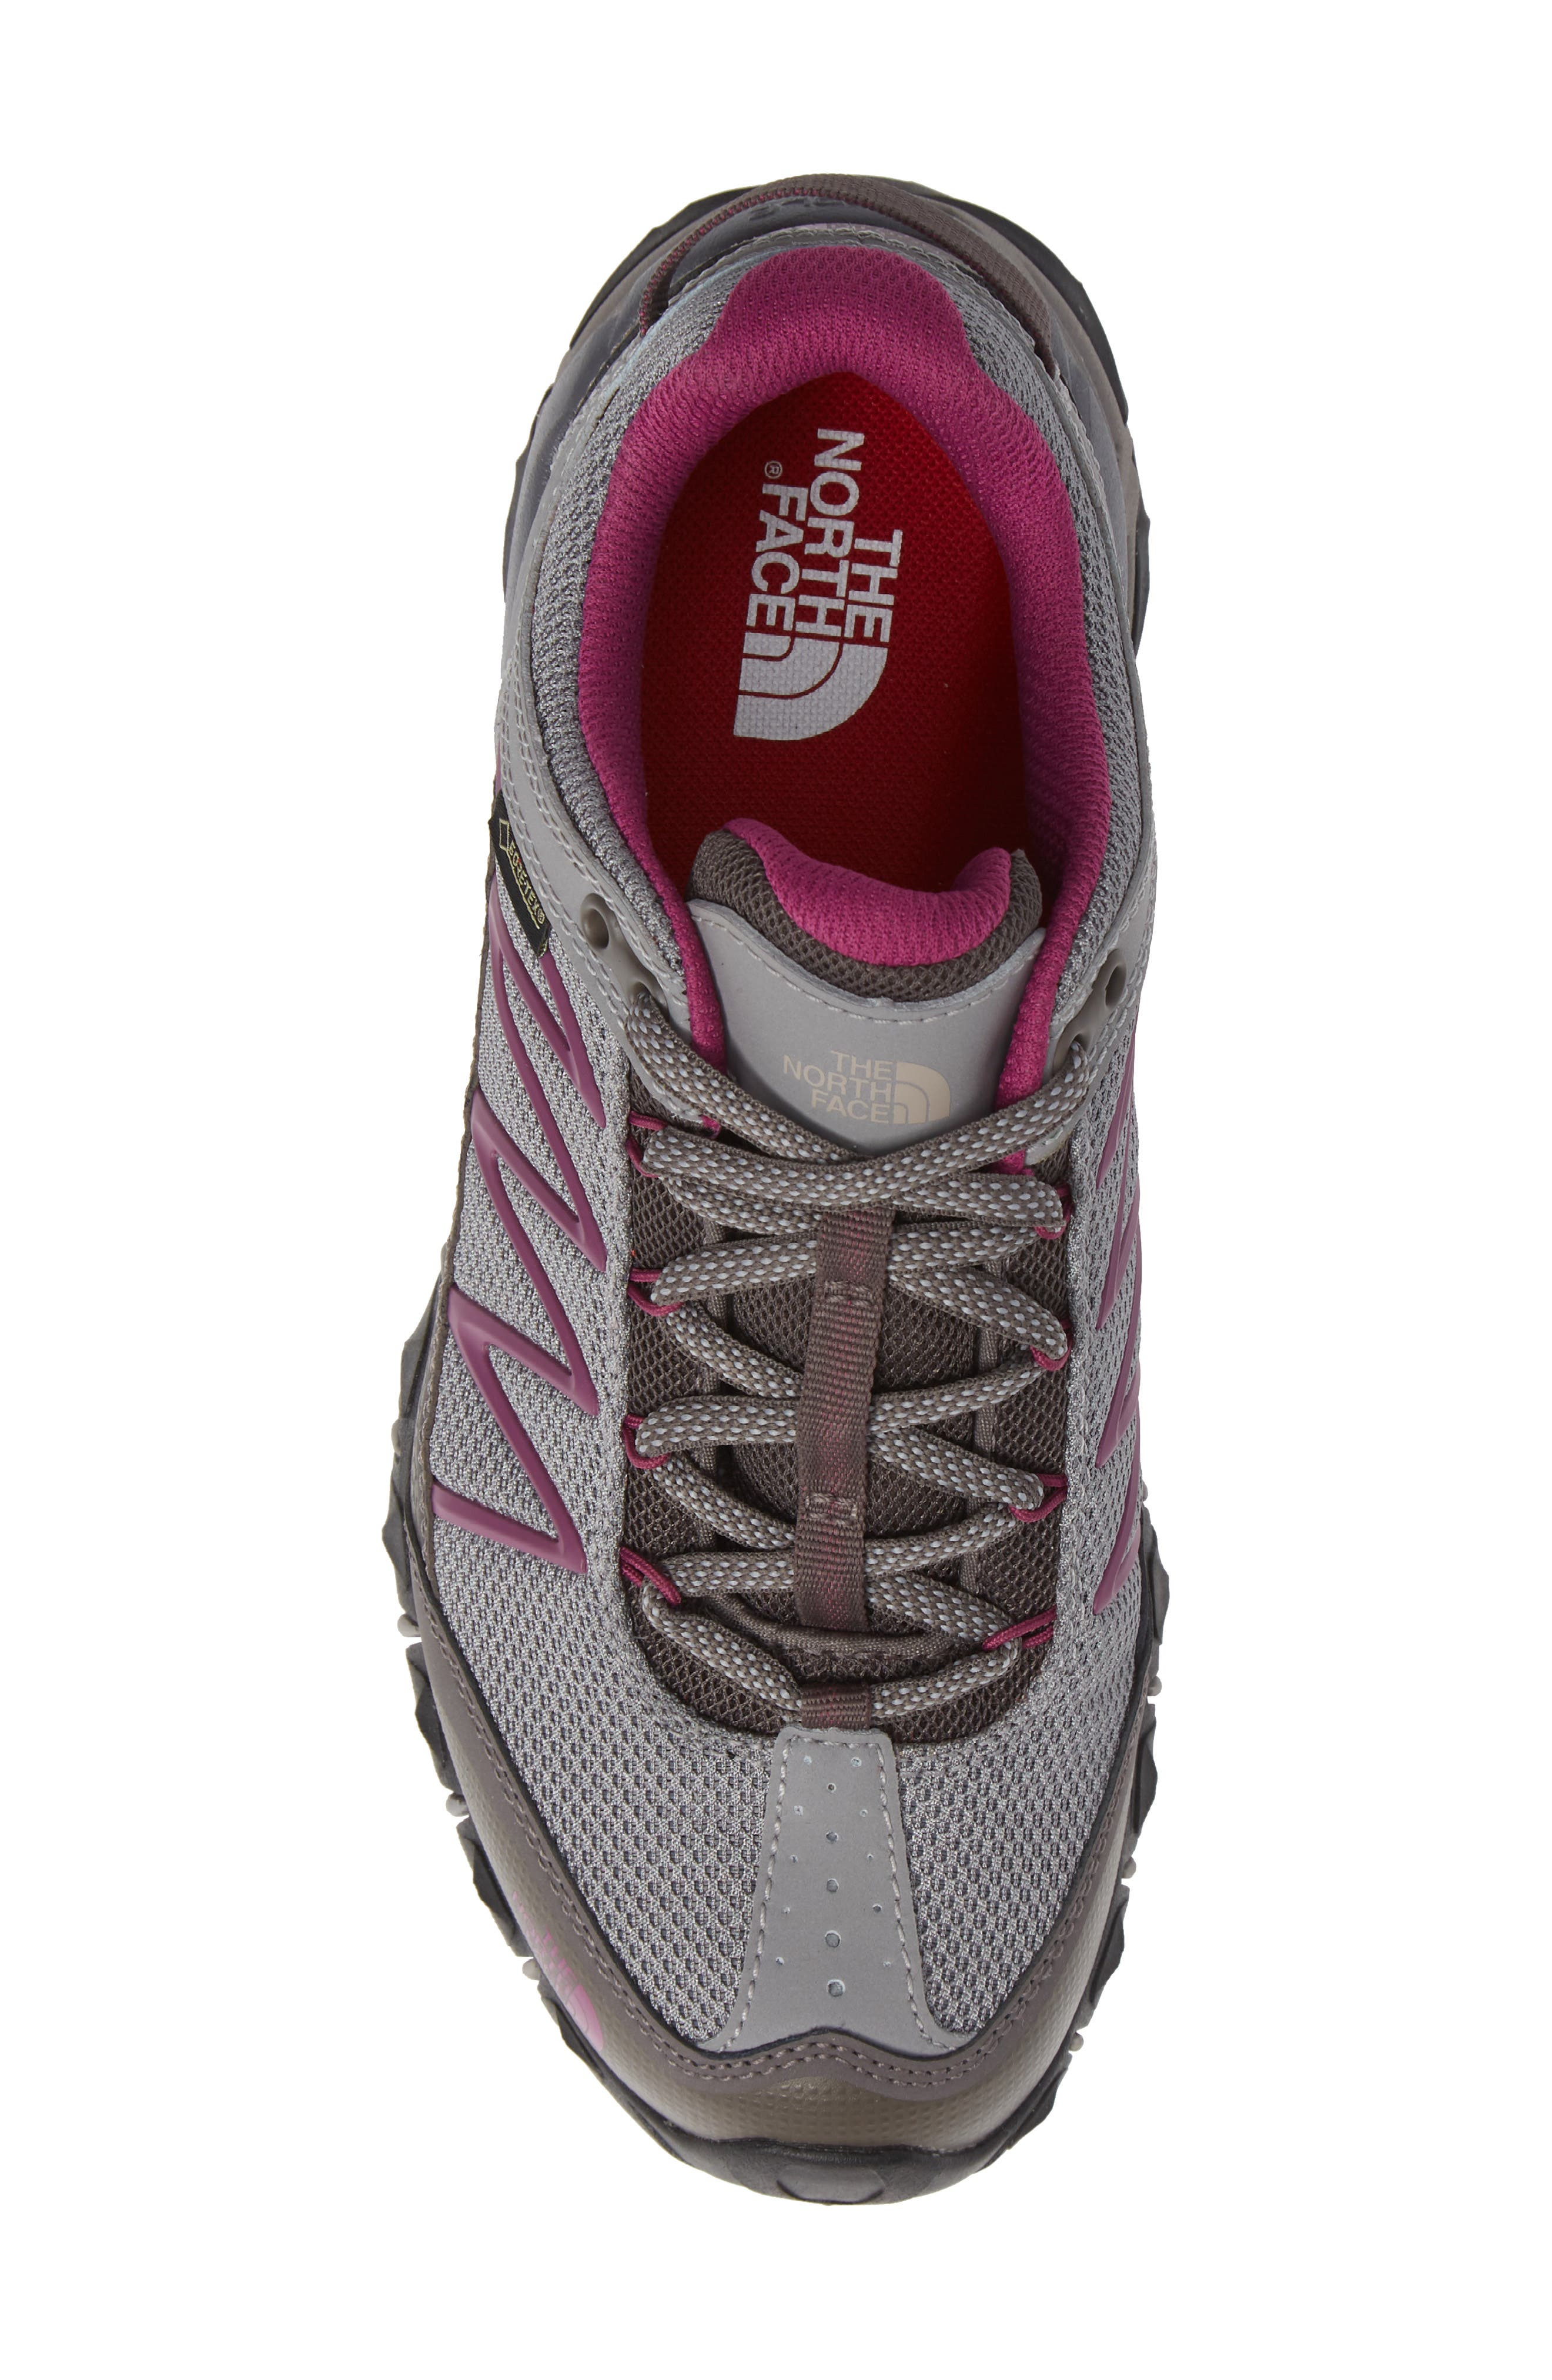 Ultra 110 GTX<sup>®</sup> Hiking Shoe,                             Alternate thumbnail 5, color,                             Q-SILVER GREY/ ASTER PURPLE